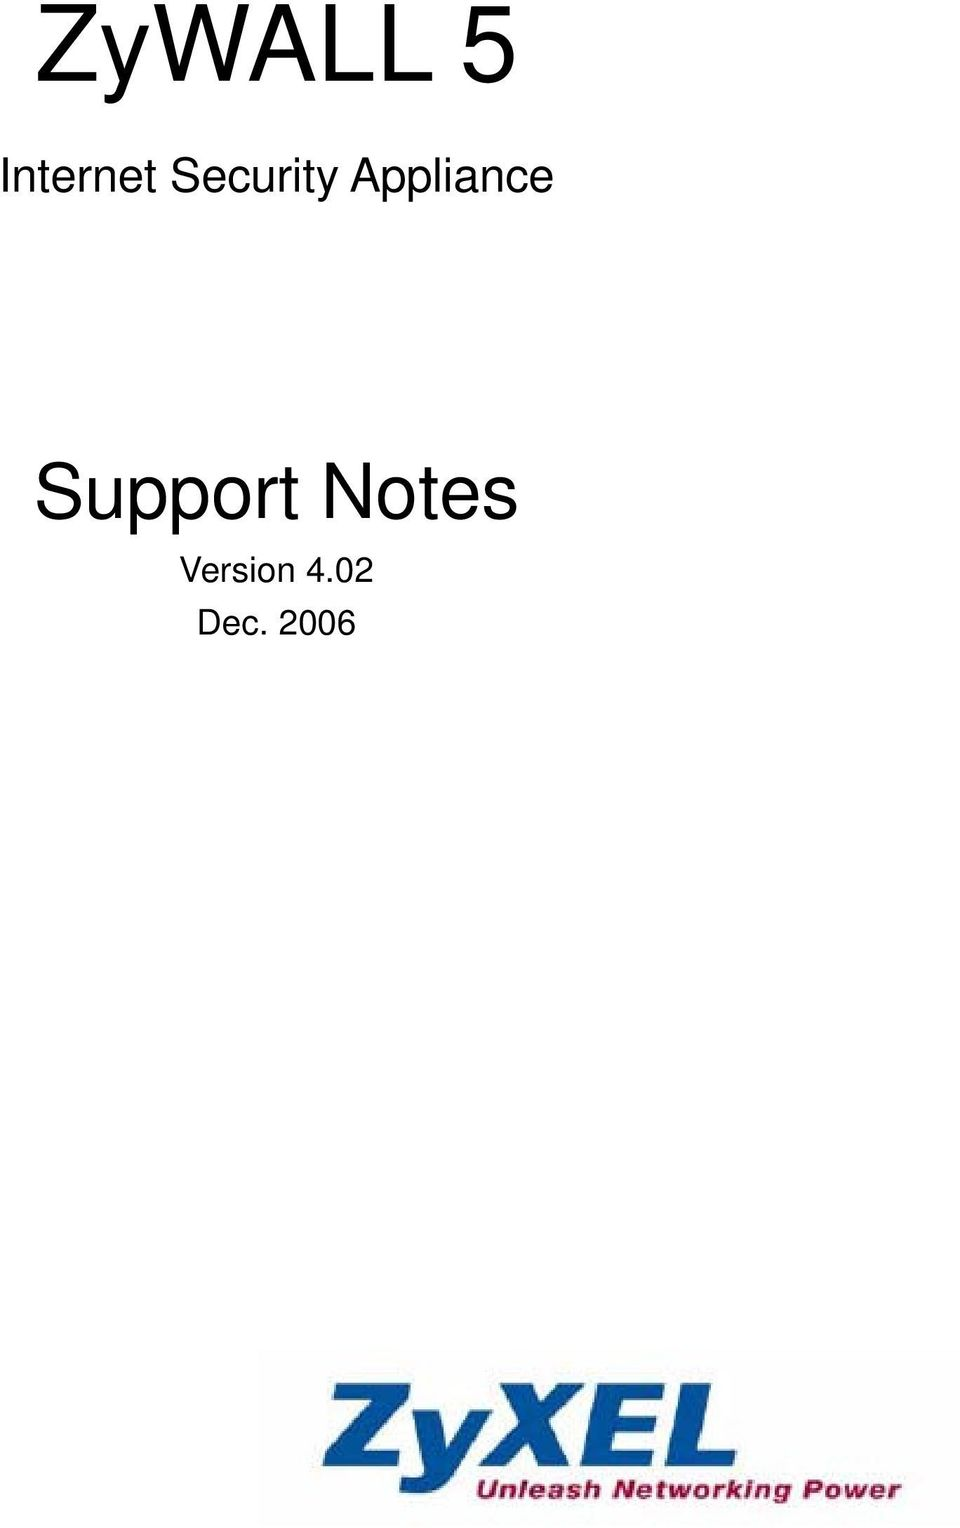 Support Notes